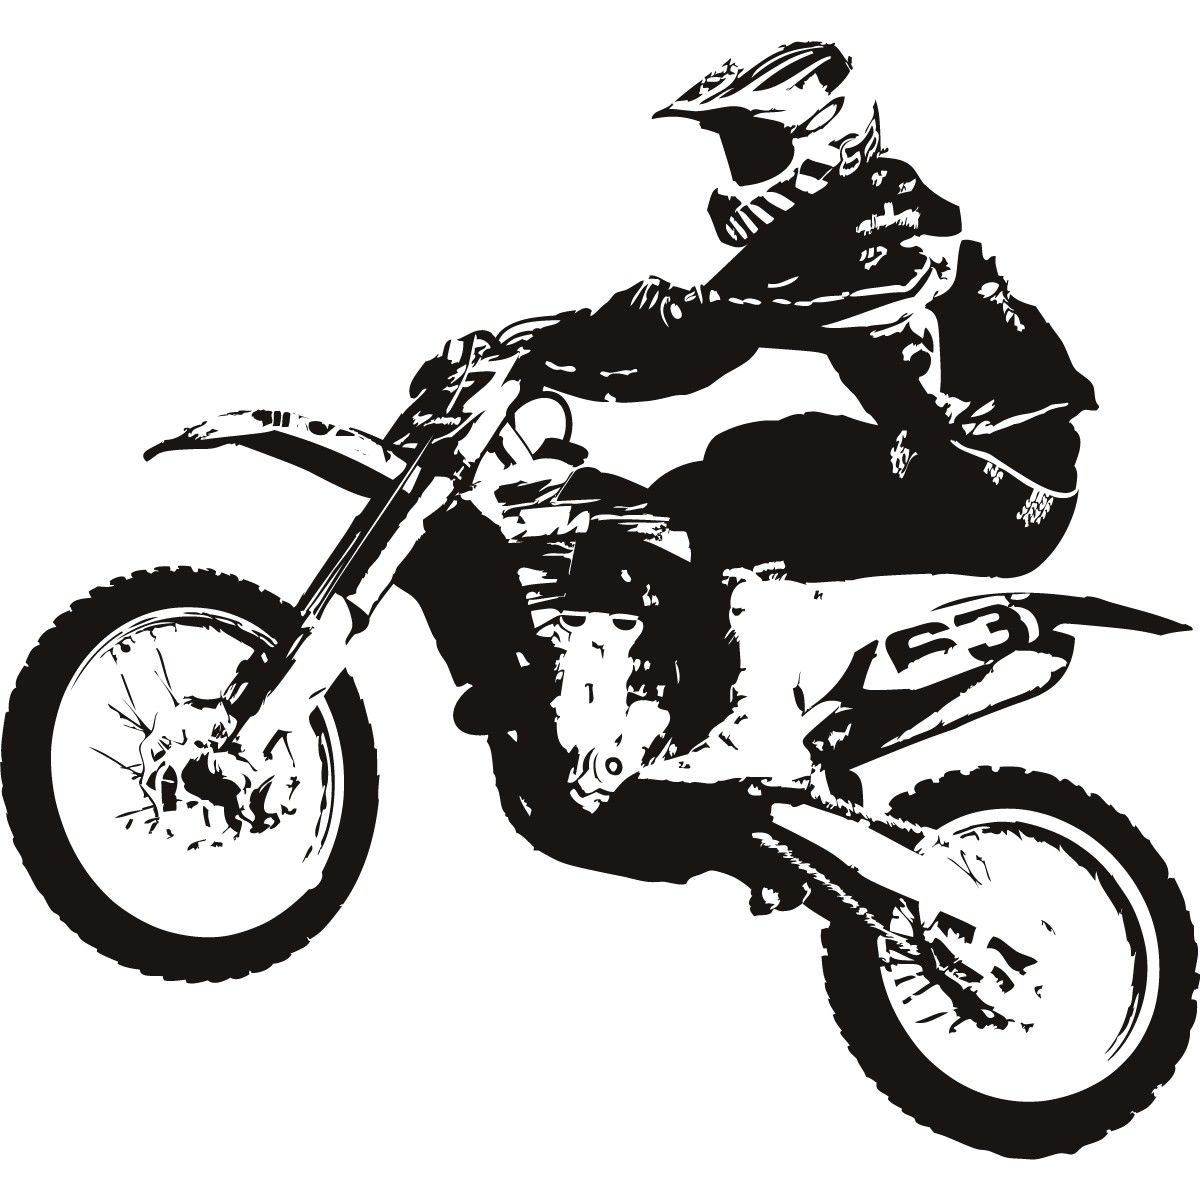 Free download motocross bike. Motorcycle clipart red dirt